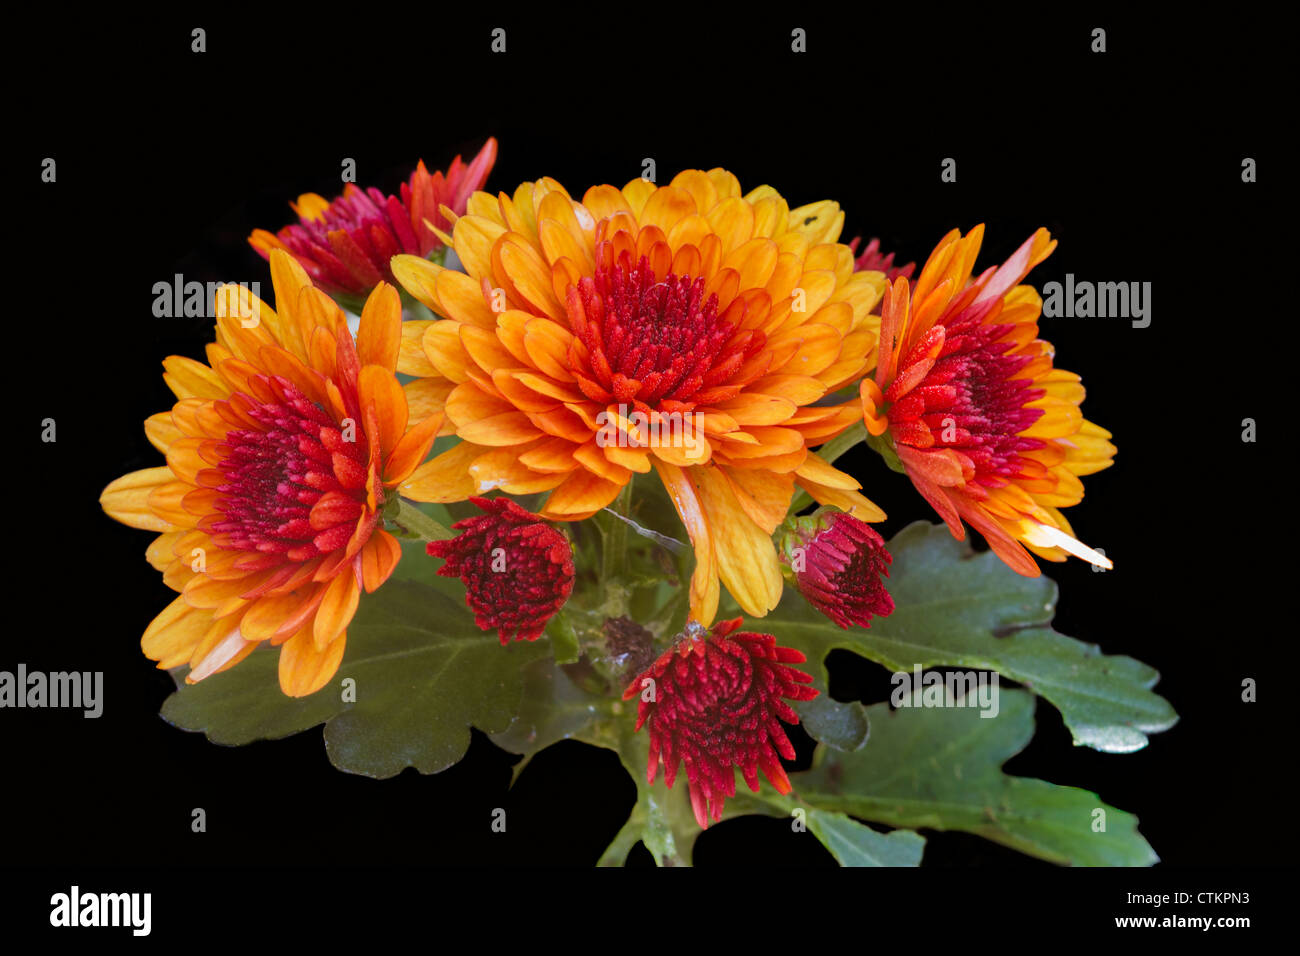 Chrysanthemum flowers isolated on a black background - Stock Image